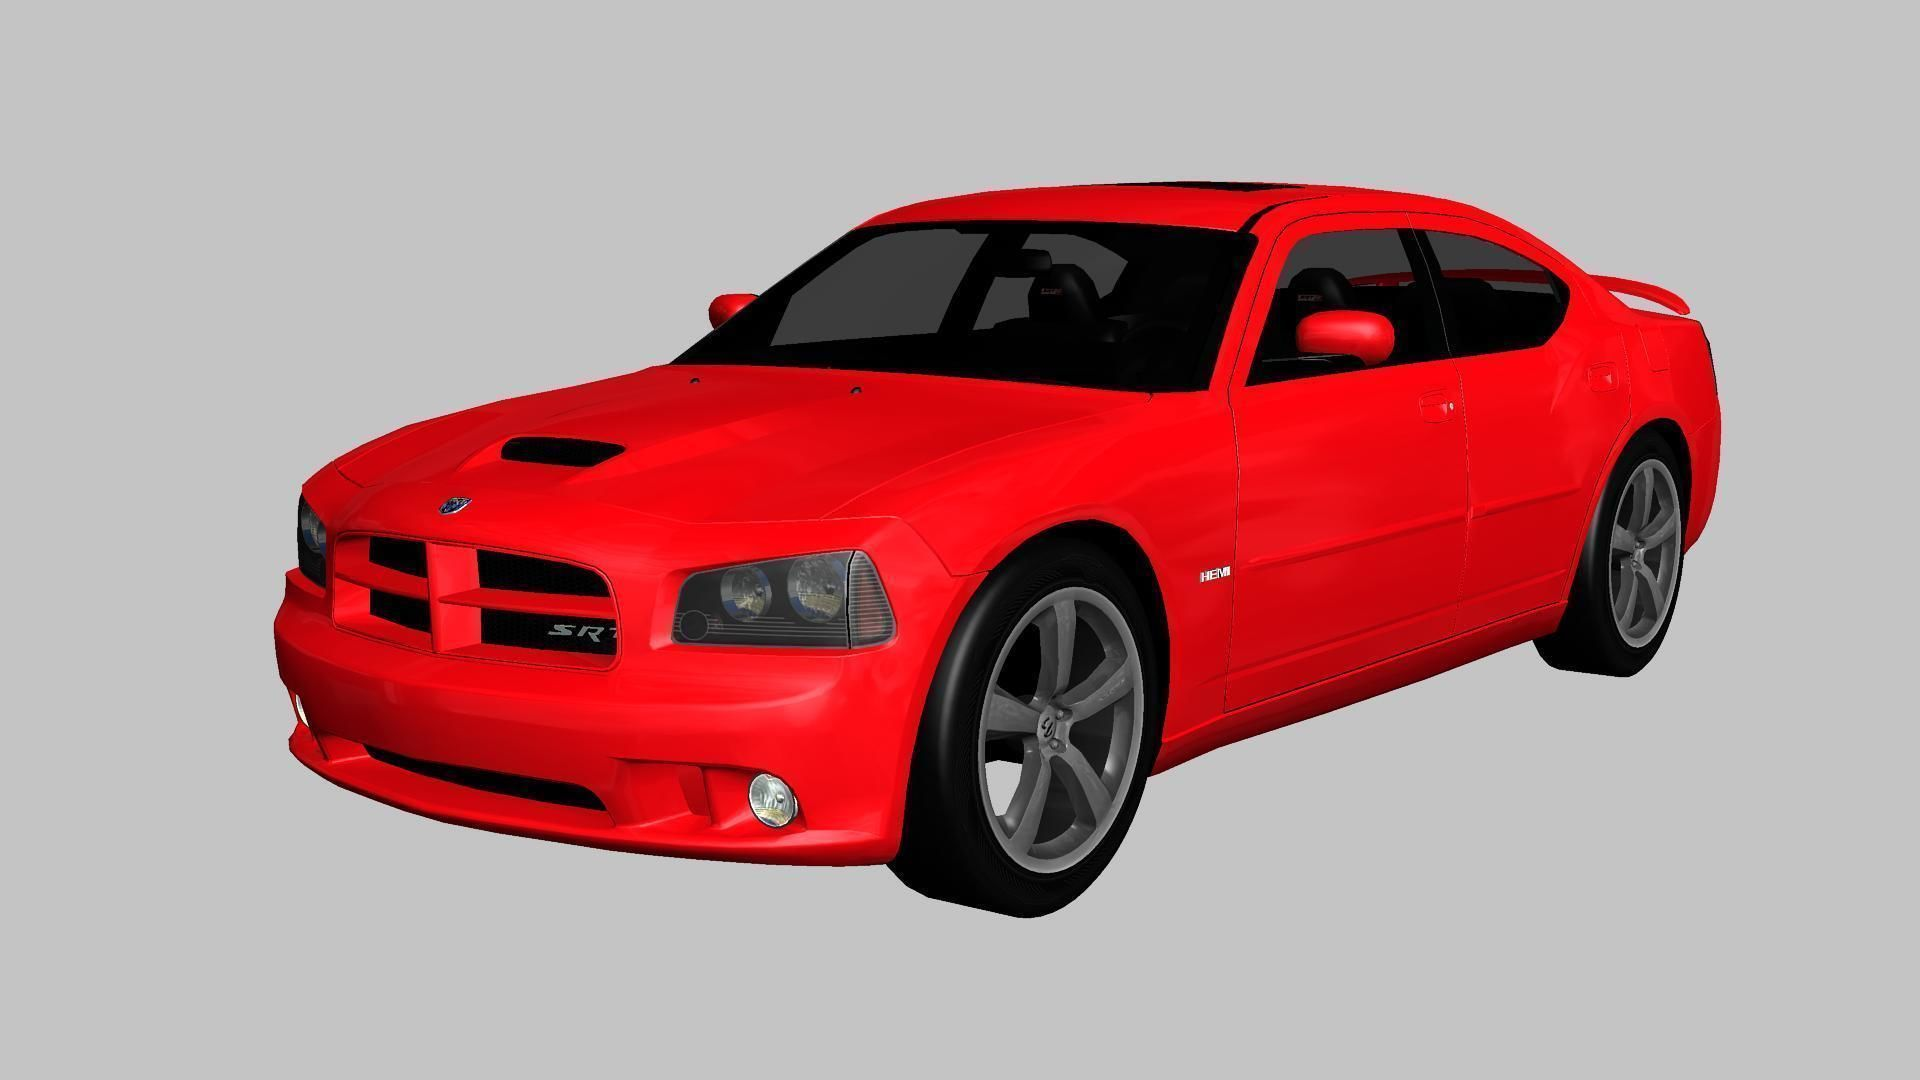 2006 dodge charger srt8 image collections cars wallpaper free dodge charger srt8 3d cgtrader dodge charger srt8 2006 3d asset fysiopointfo image collections sciox Choice Image